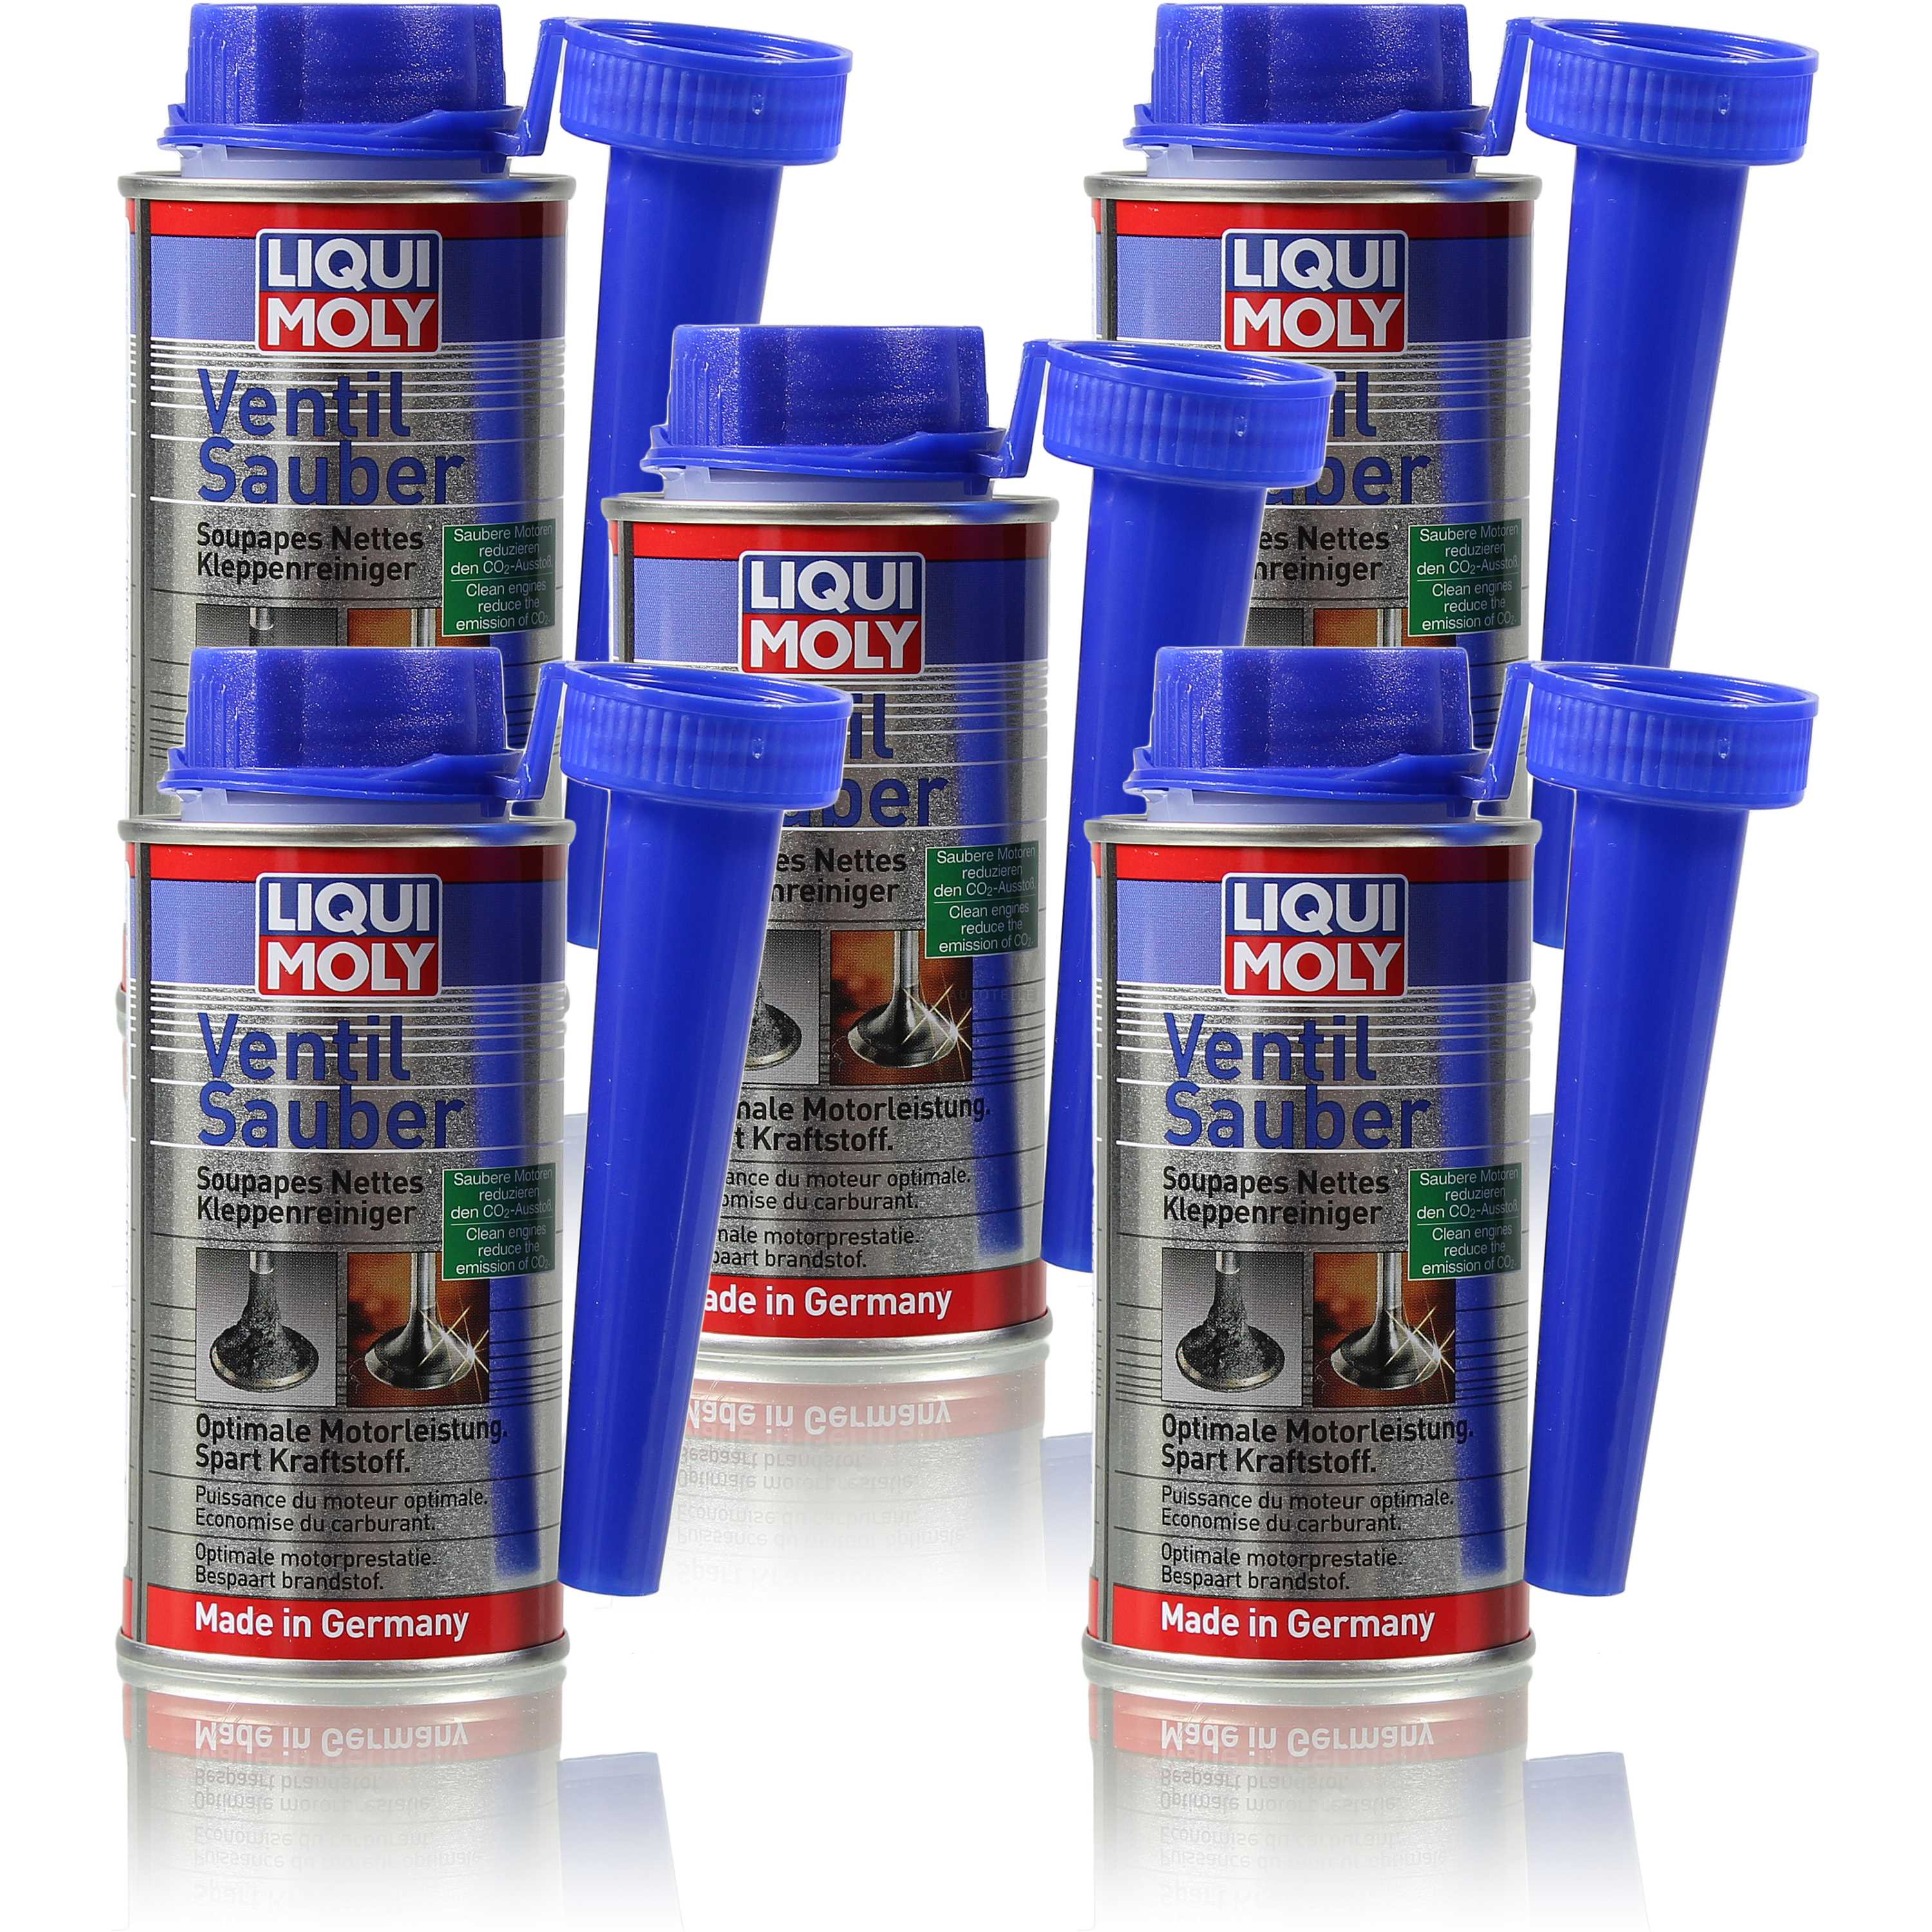 5x150 ml original liqui moly ventil sauber kraftstoff. Black Bedroom Furniture Sets. Home Design Ideas